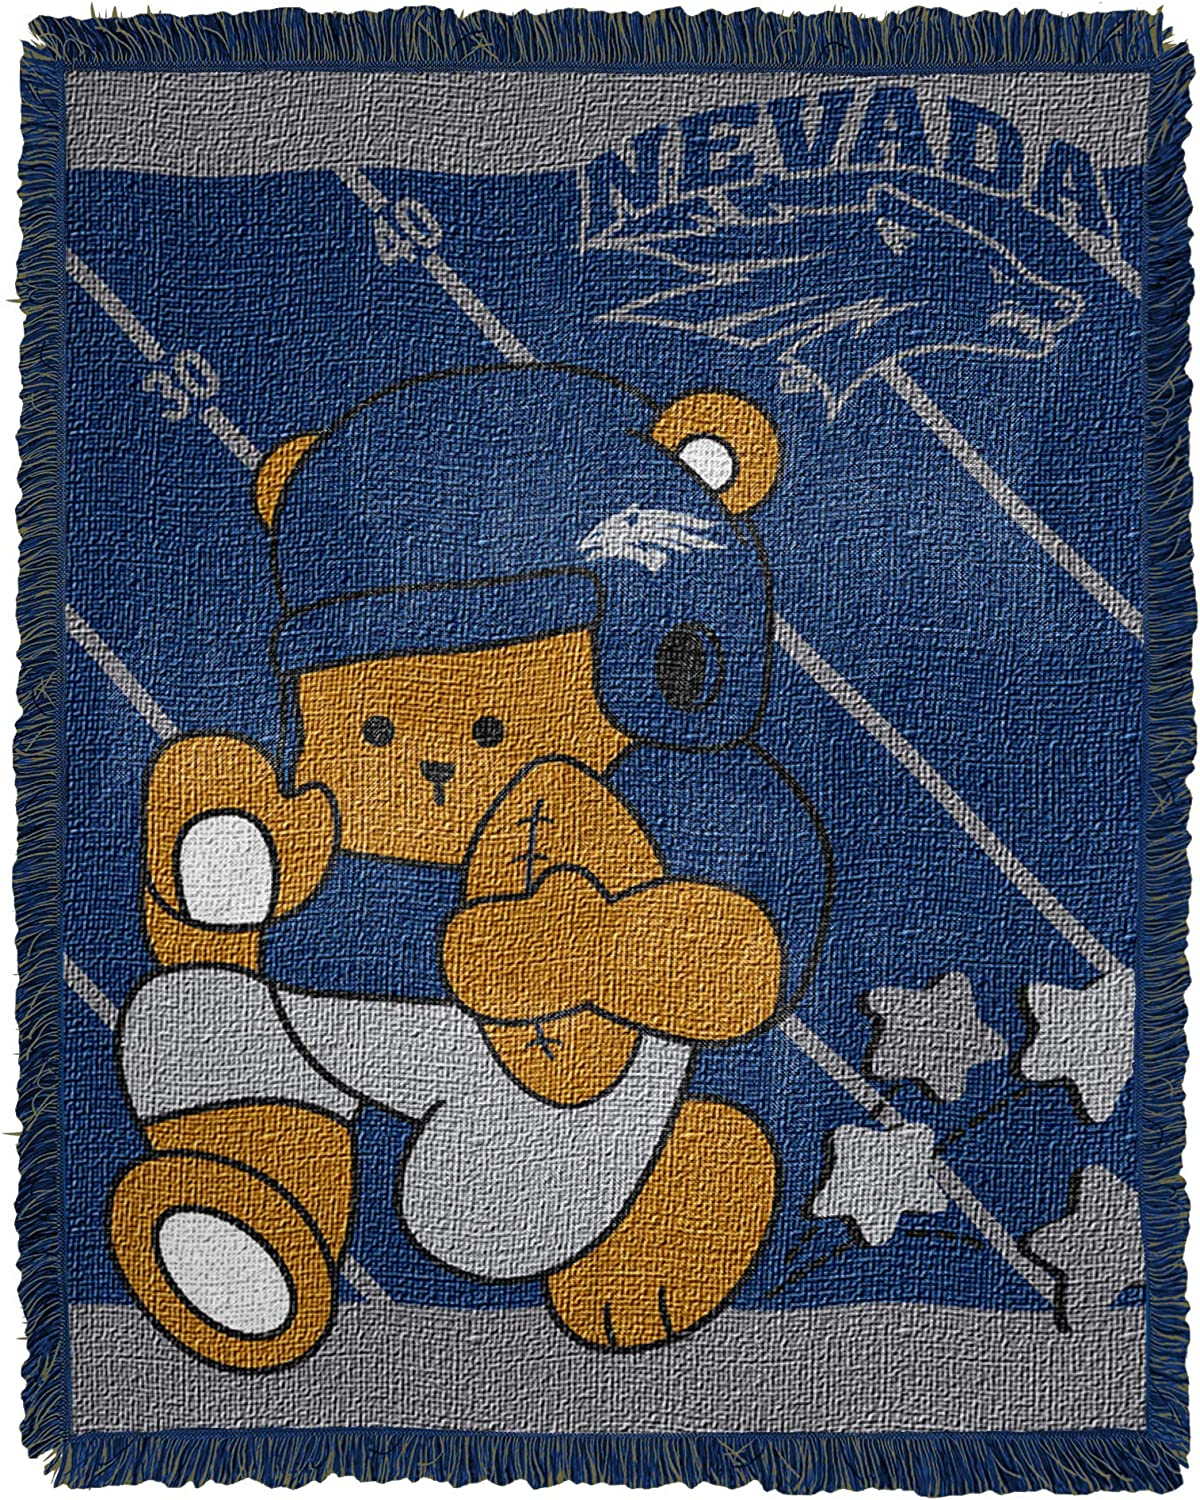 Officially Licensed NCAA Fullback Jacquard Woven Baby Throw Blanket Multi Color 36 x 46